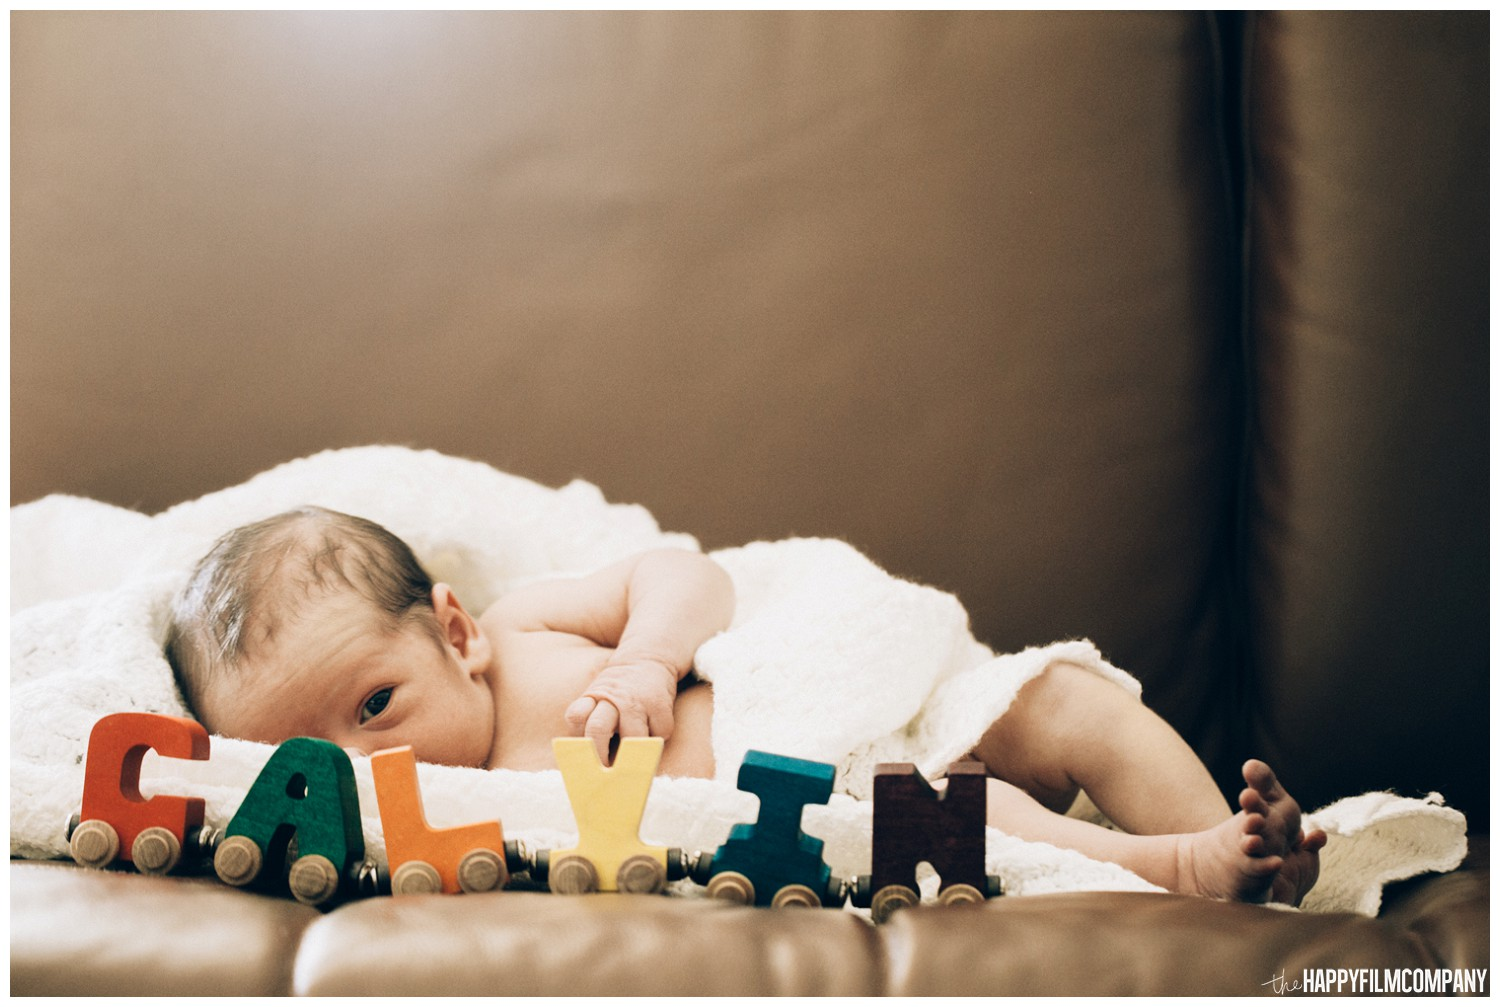 Newborn baby with wooden letter name trains - the Happy film Company - Seattle family photos